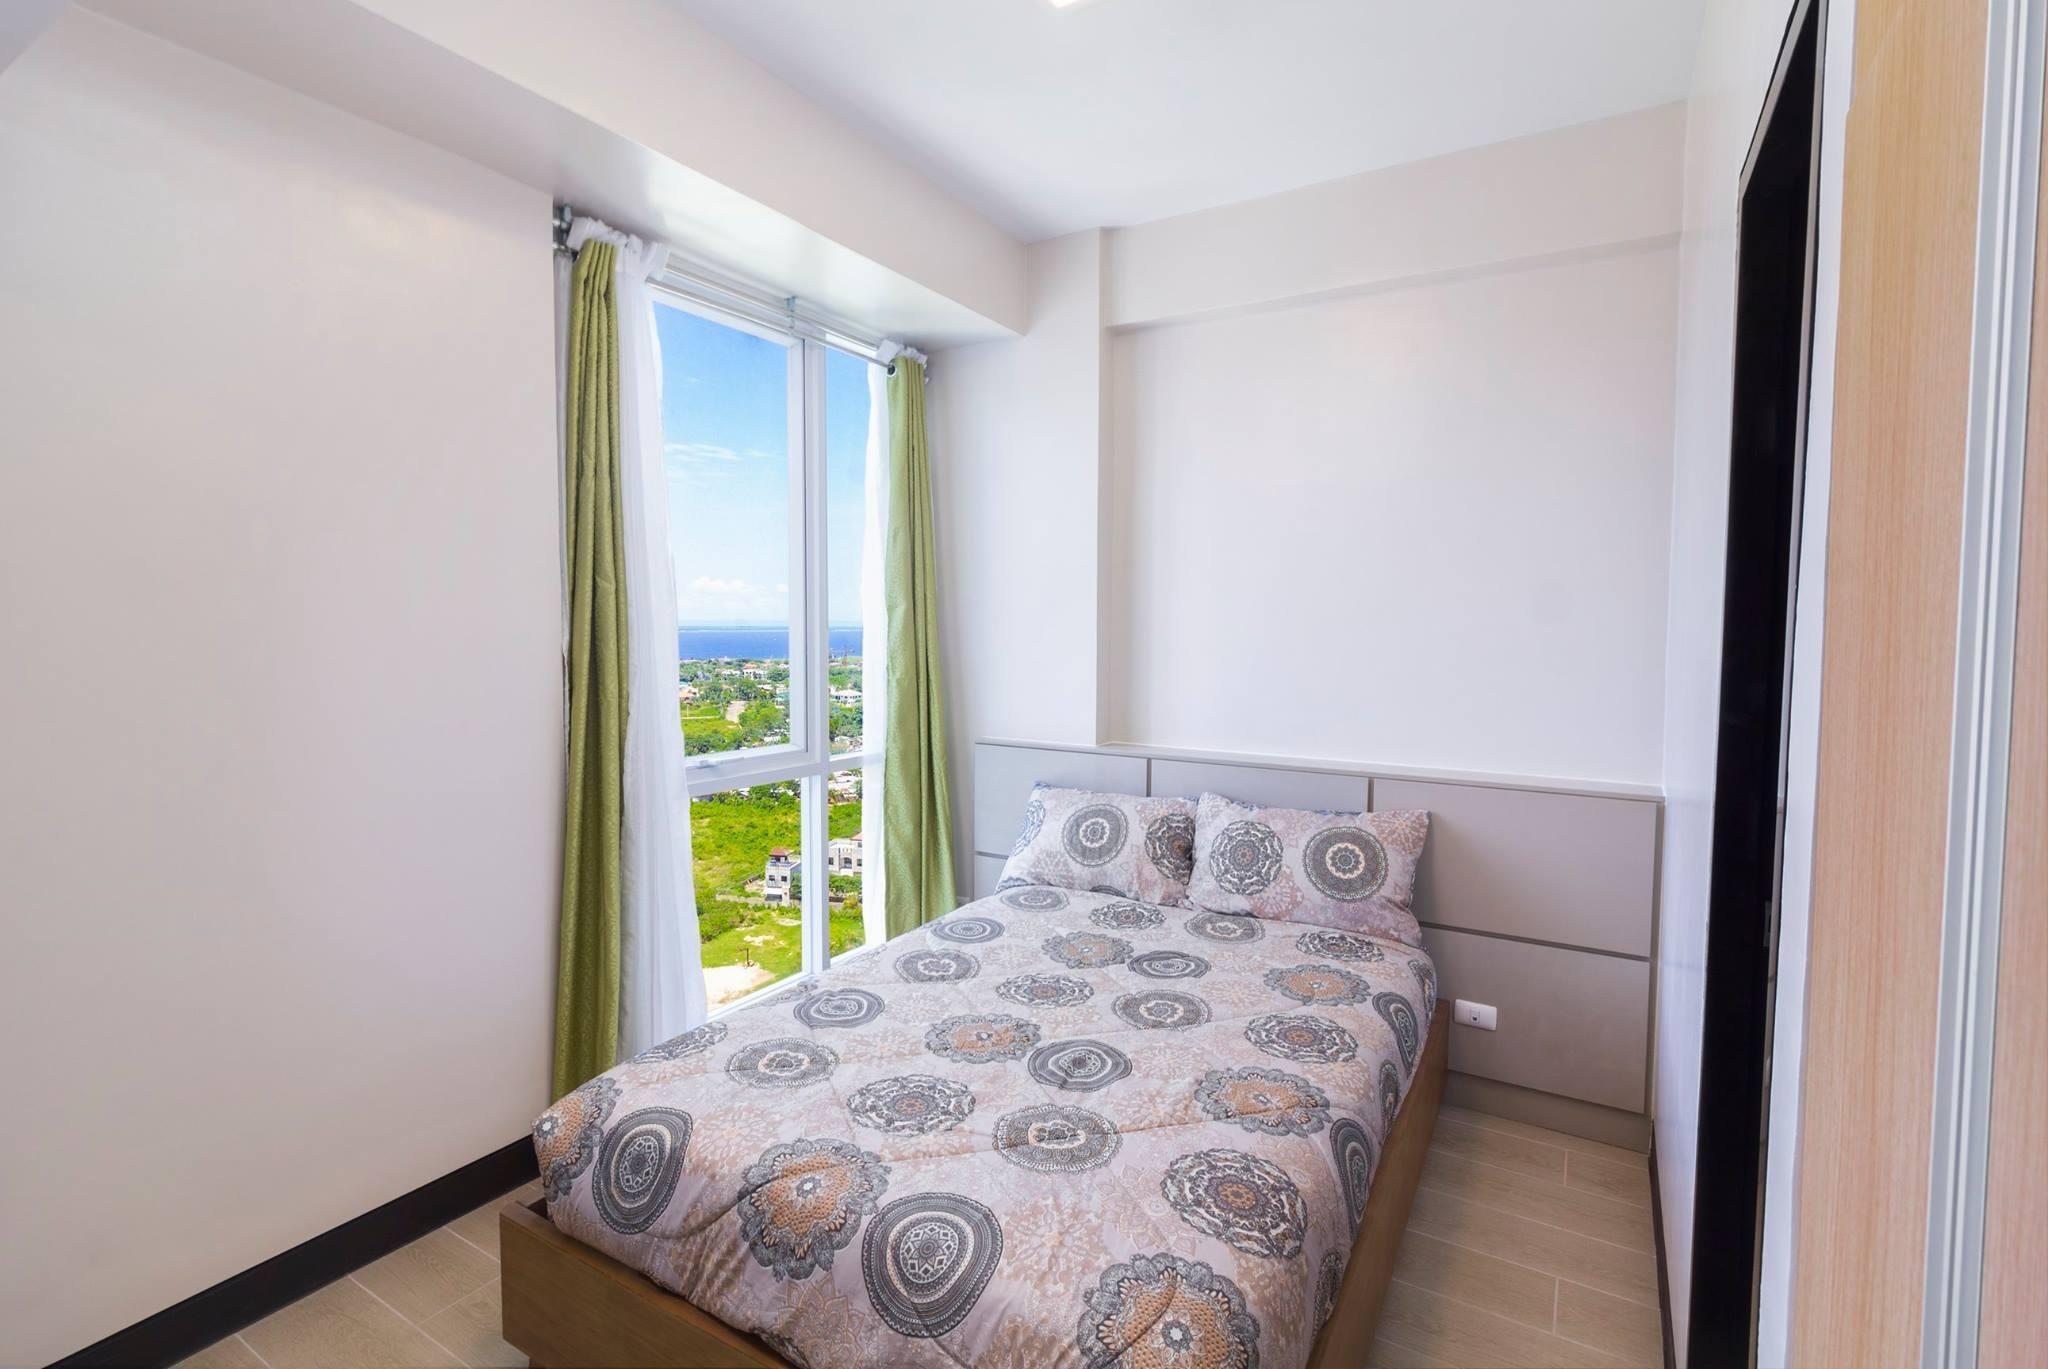 Condo in Mactan Newtown Near Airport - Hotels Information/Map/Reviews/Reservation